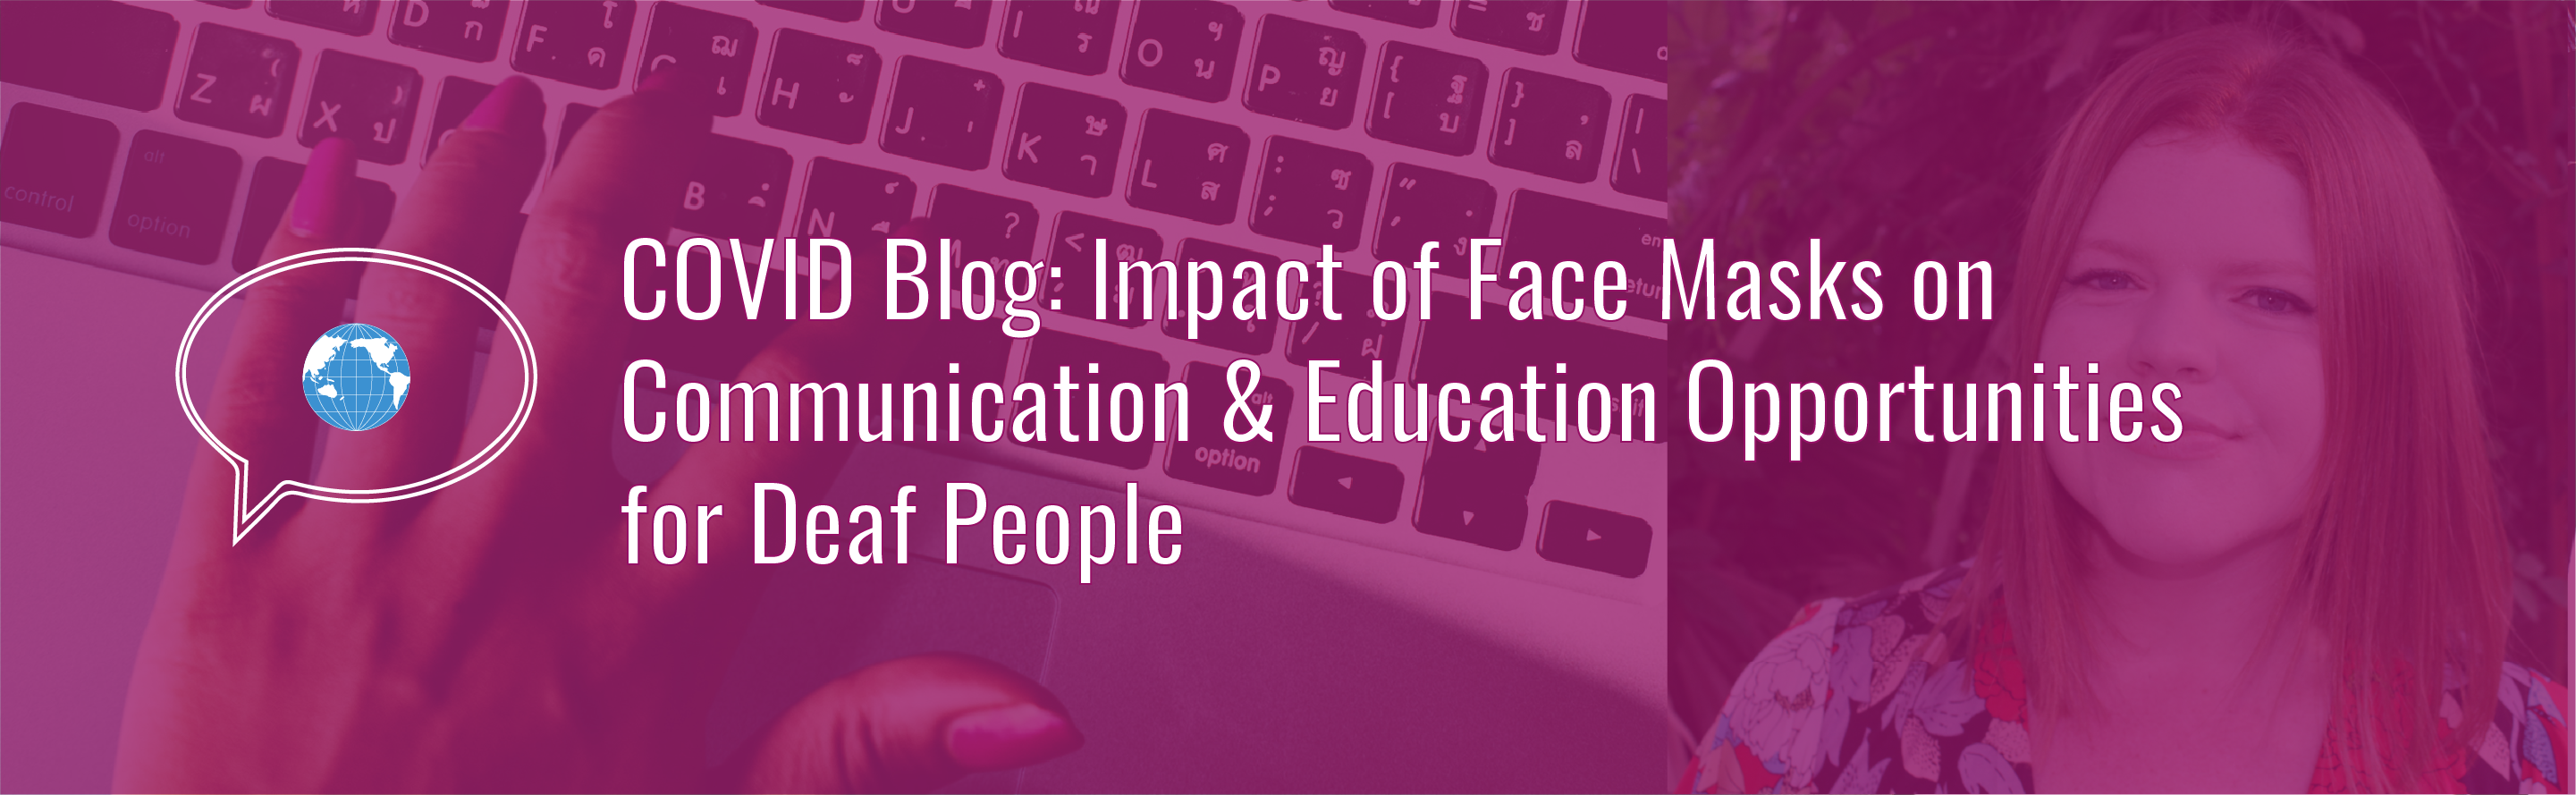 Banner with text: COVID Blog: Impact of Face Masks on Communication & Education for Deaf People. Icon of speech bubble with WID globe. Background photo of a hand typing on a laptop computer and author photo with a magenta tint.